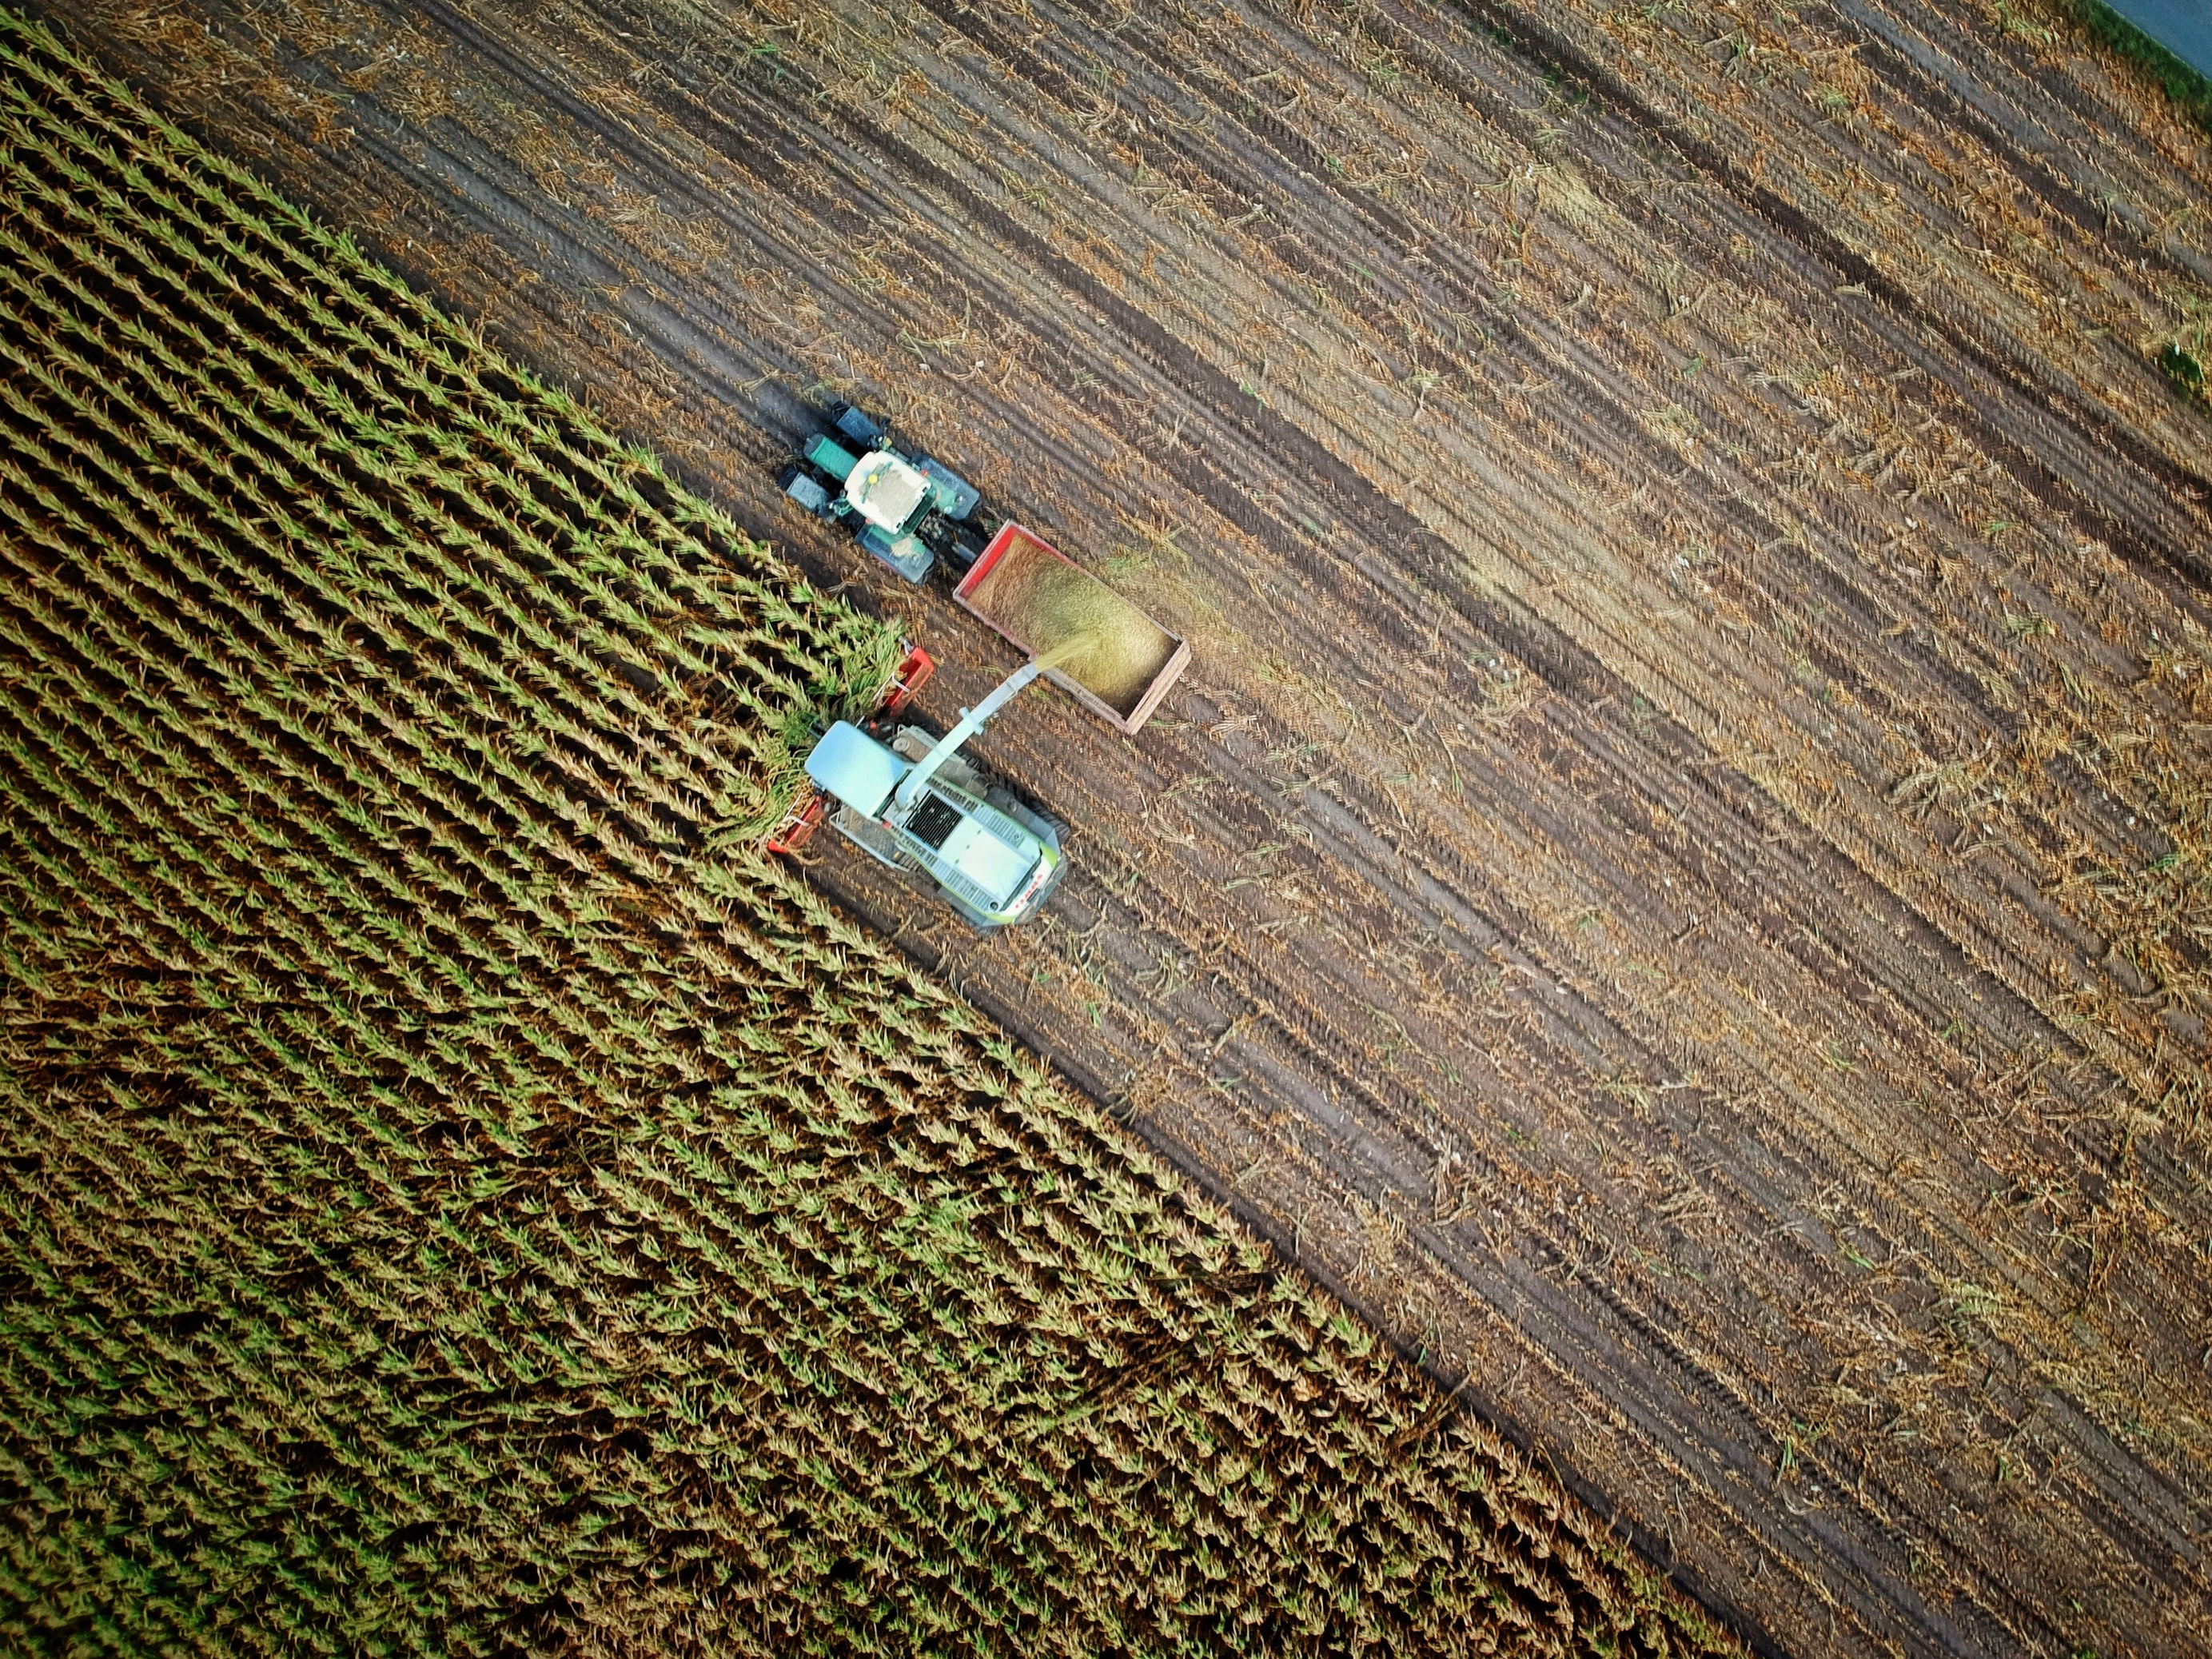 Aerial view of farmer collecting crops